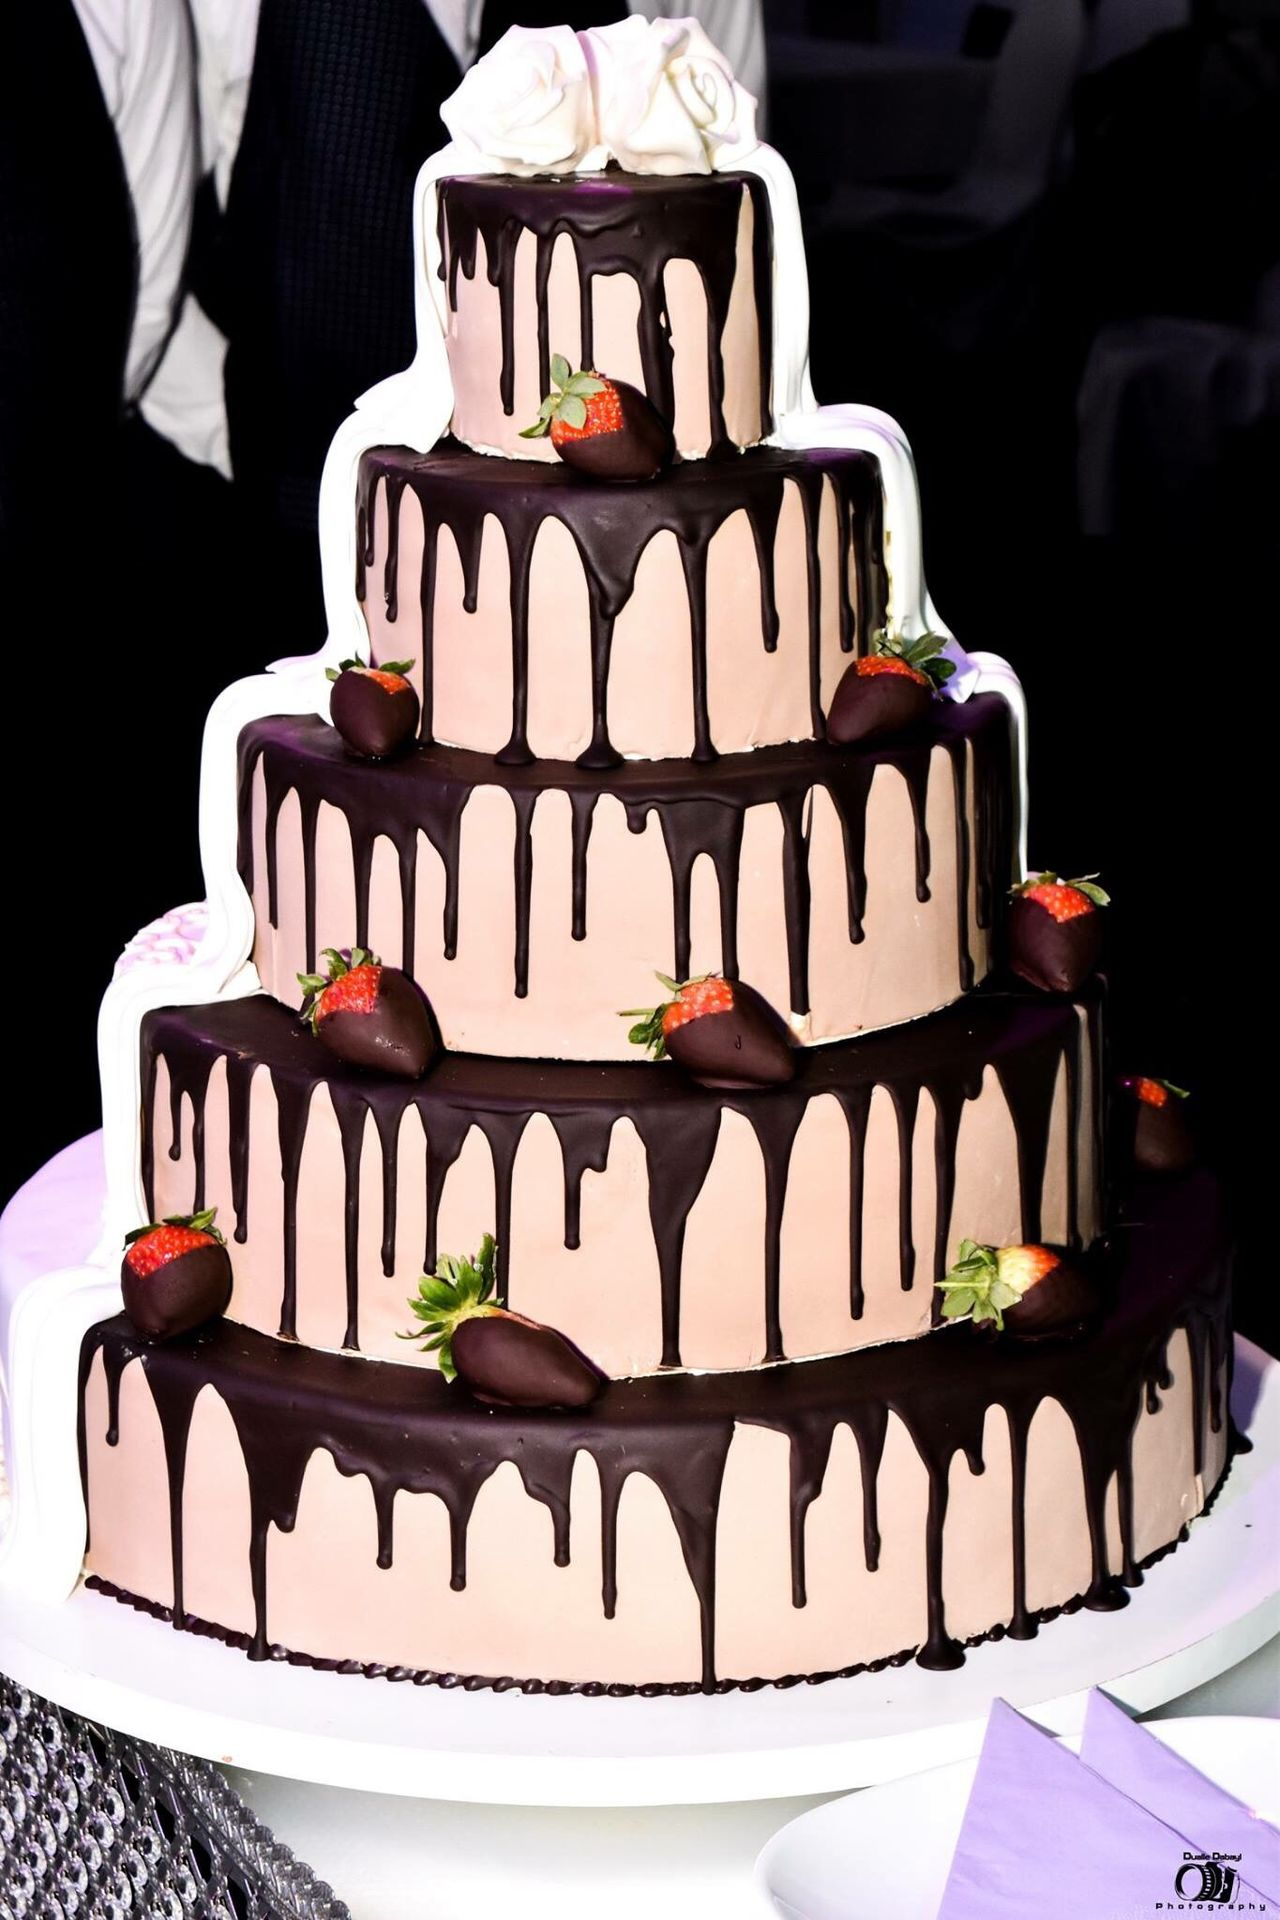 Wedding cake 😊❤️ delicious darkness and colourful Sweet Food Indulgence Dessert Food And Drink Food Unhealthy Eating Temptation Freshness Cake Serving Size Ready-to-eat Celebration Gourmet Indoors  Life Events Garnish Birthday Cake No People (null)Wedding Wedding Cake